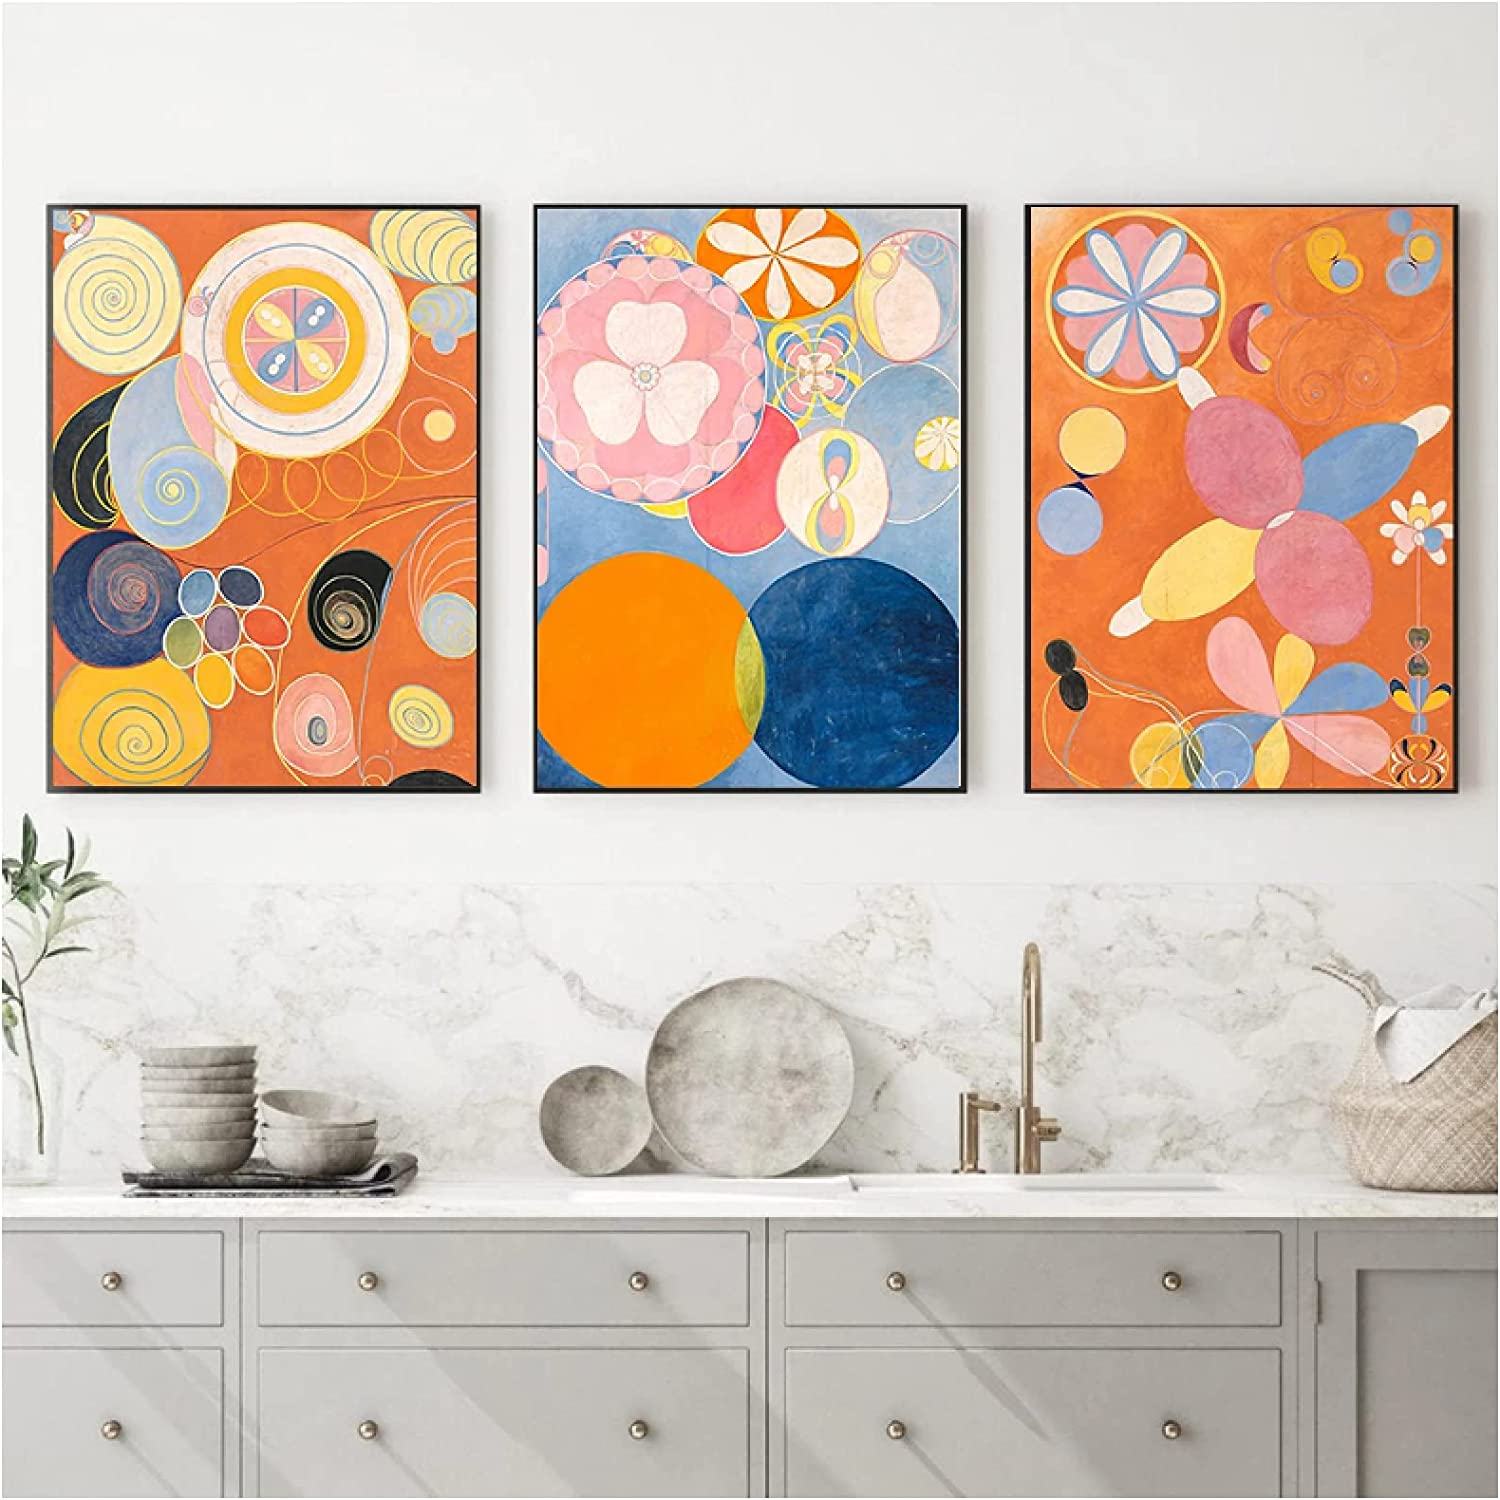 Xynfl Time sale Abstract Geometry Boho Nursery and Prints Posters Courier shipping free Cartoon